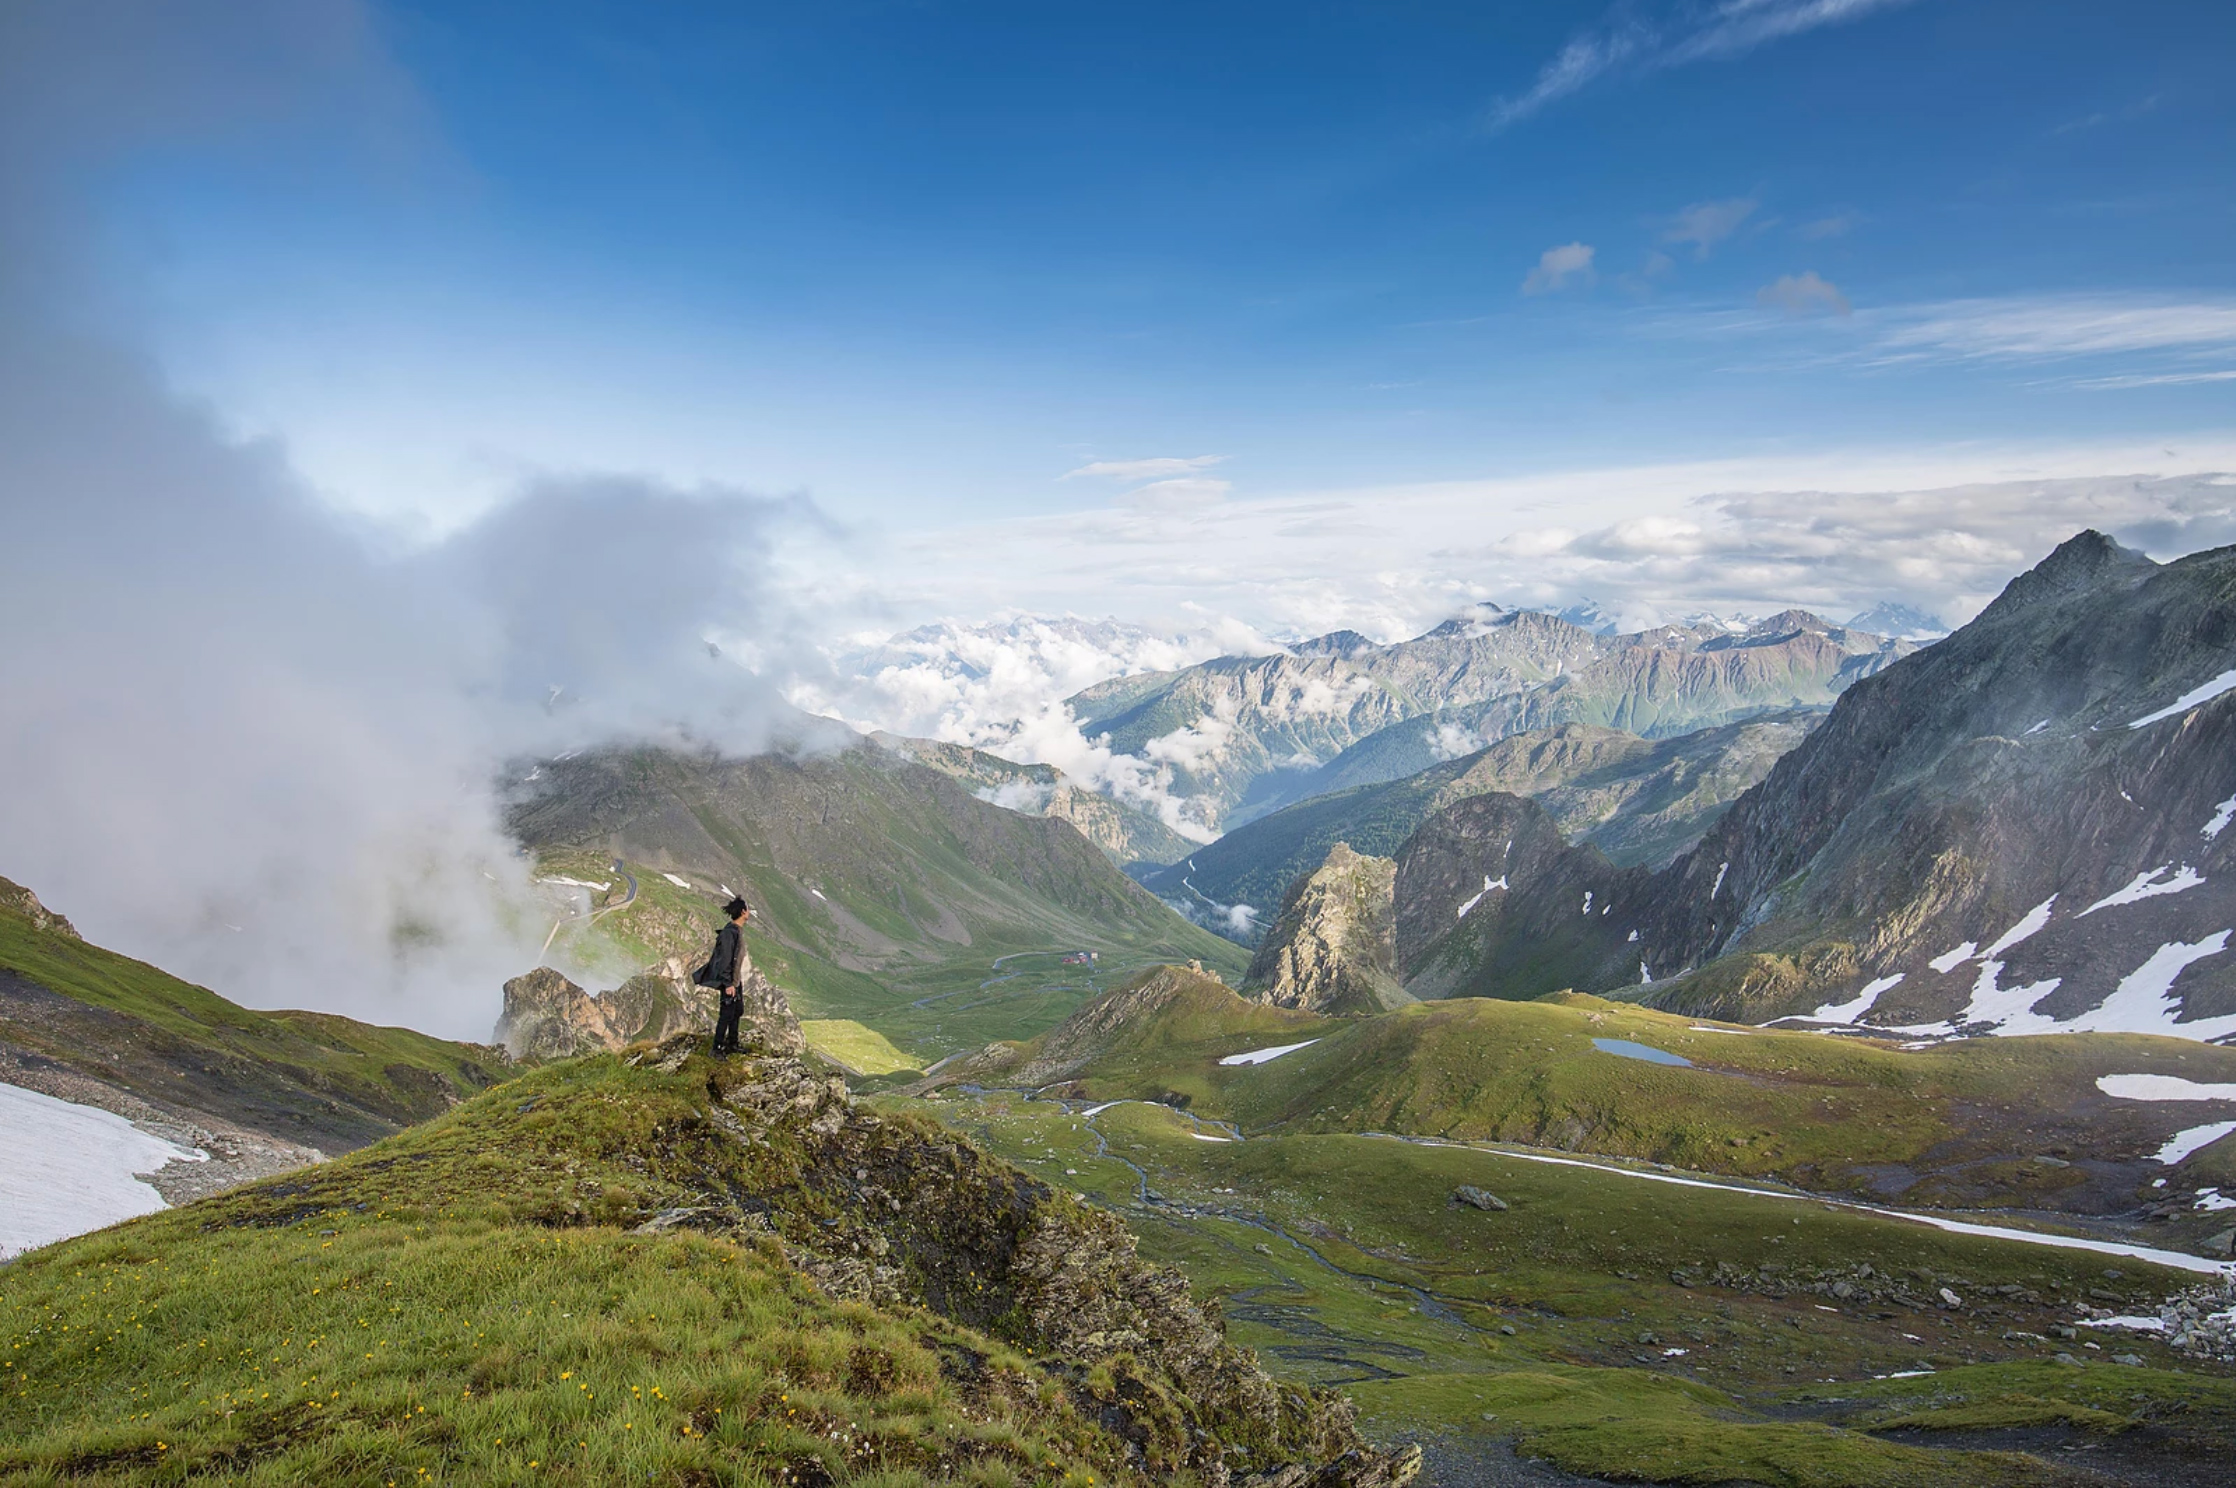 Magnificent and Sweeping Views of the Alps